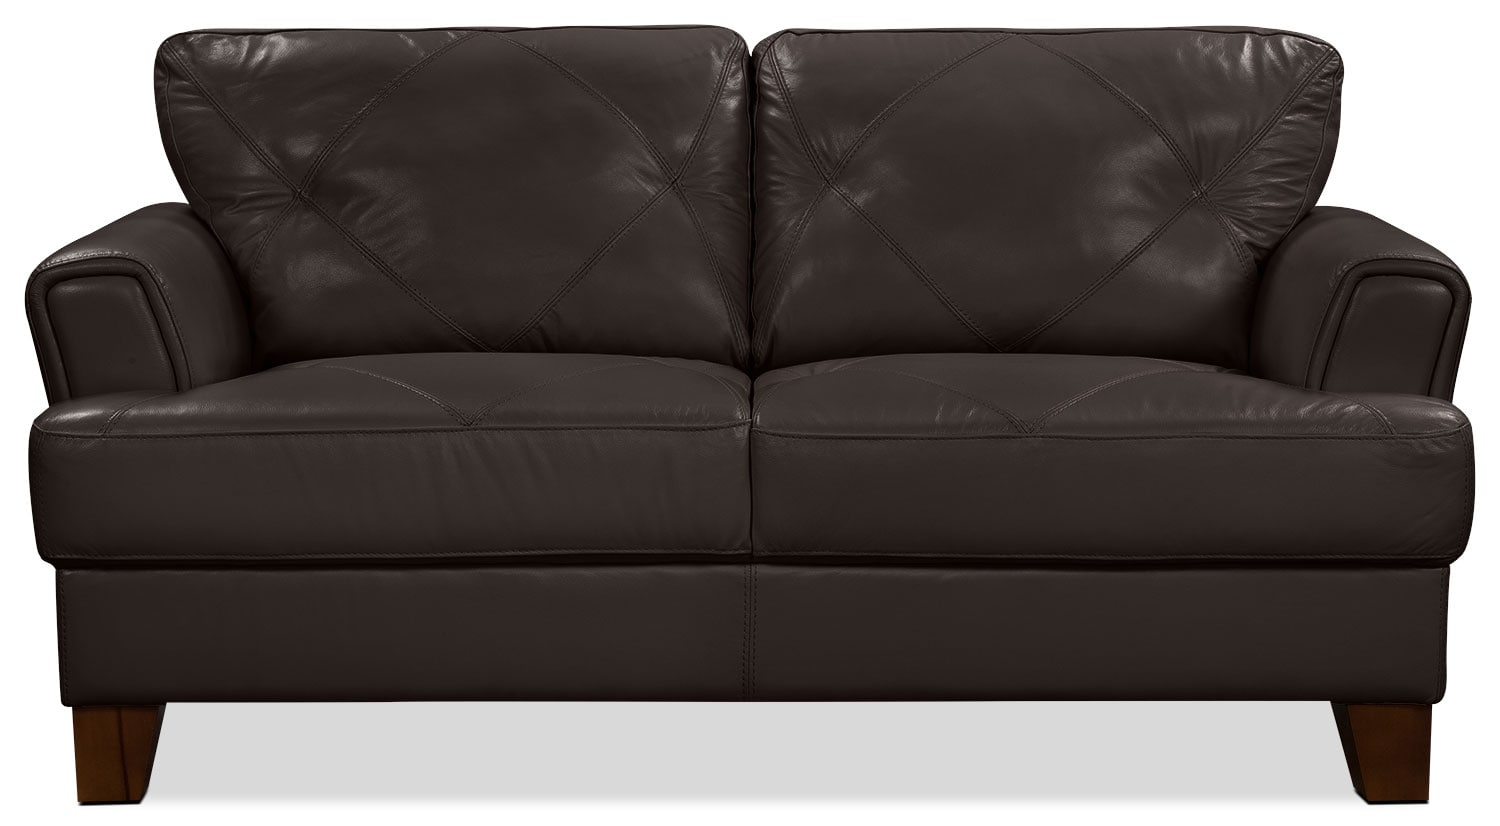 Vita 100% Genuine Leather Loveseat – Chocolate